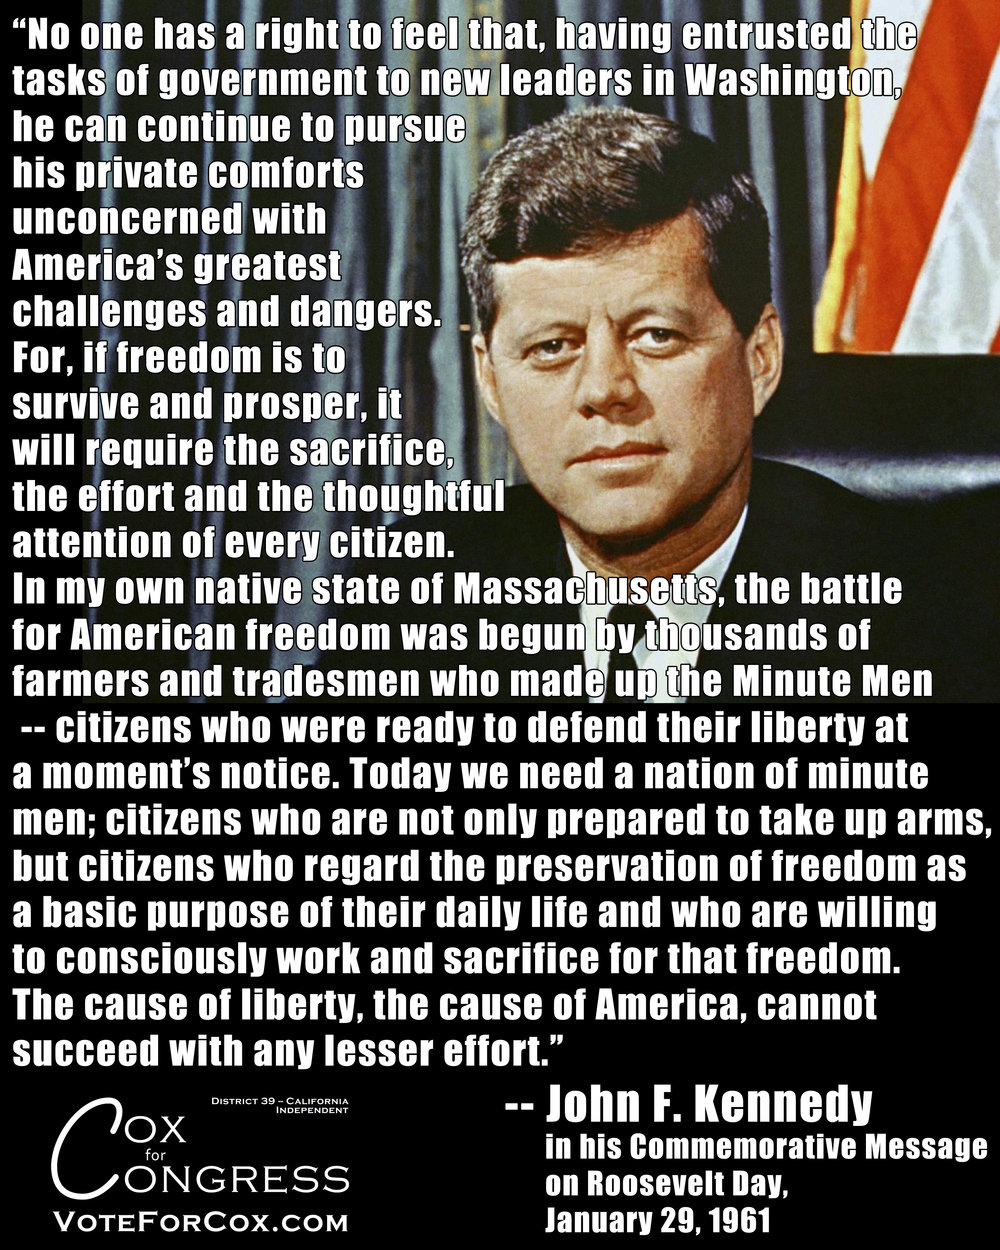 John F. Kennedy discussing the responsibilities of citizenship, and the right to bear arms as among said responsibilities.